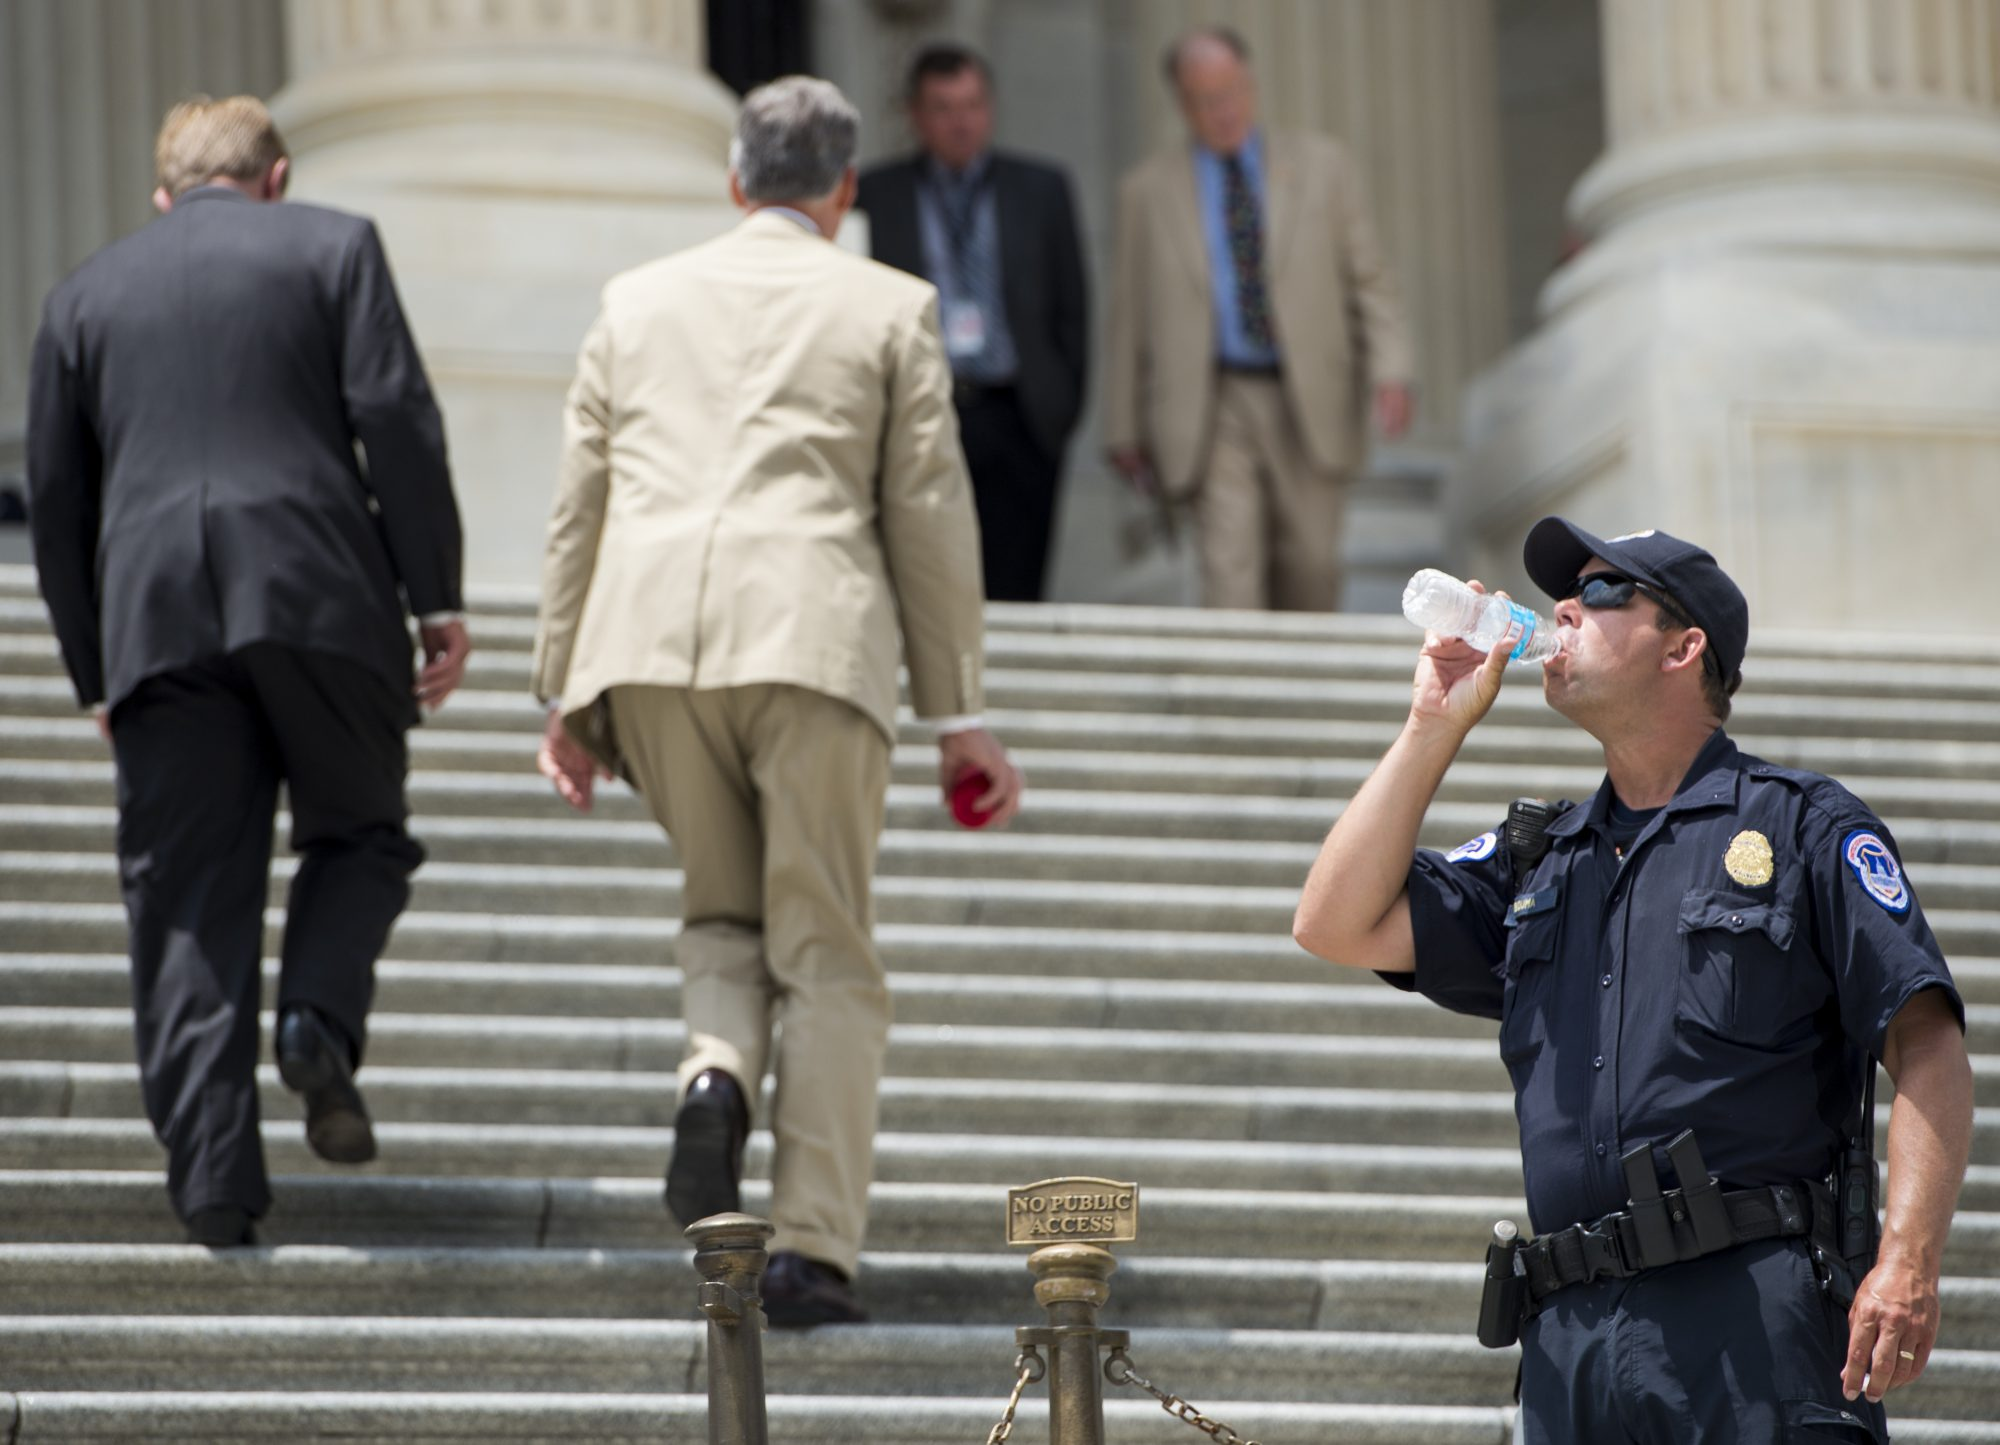 Police Officer Drinking Water